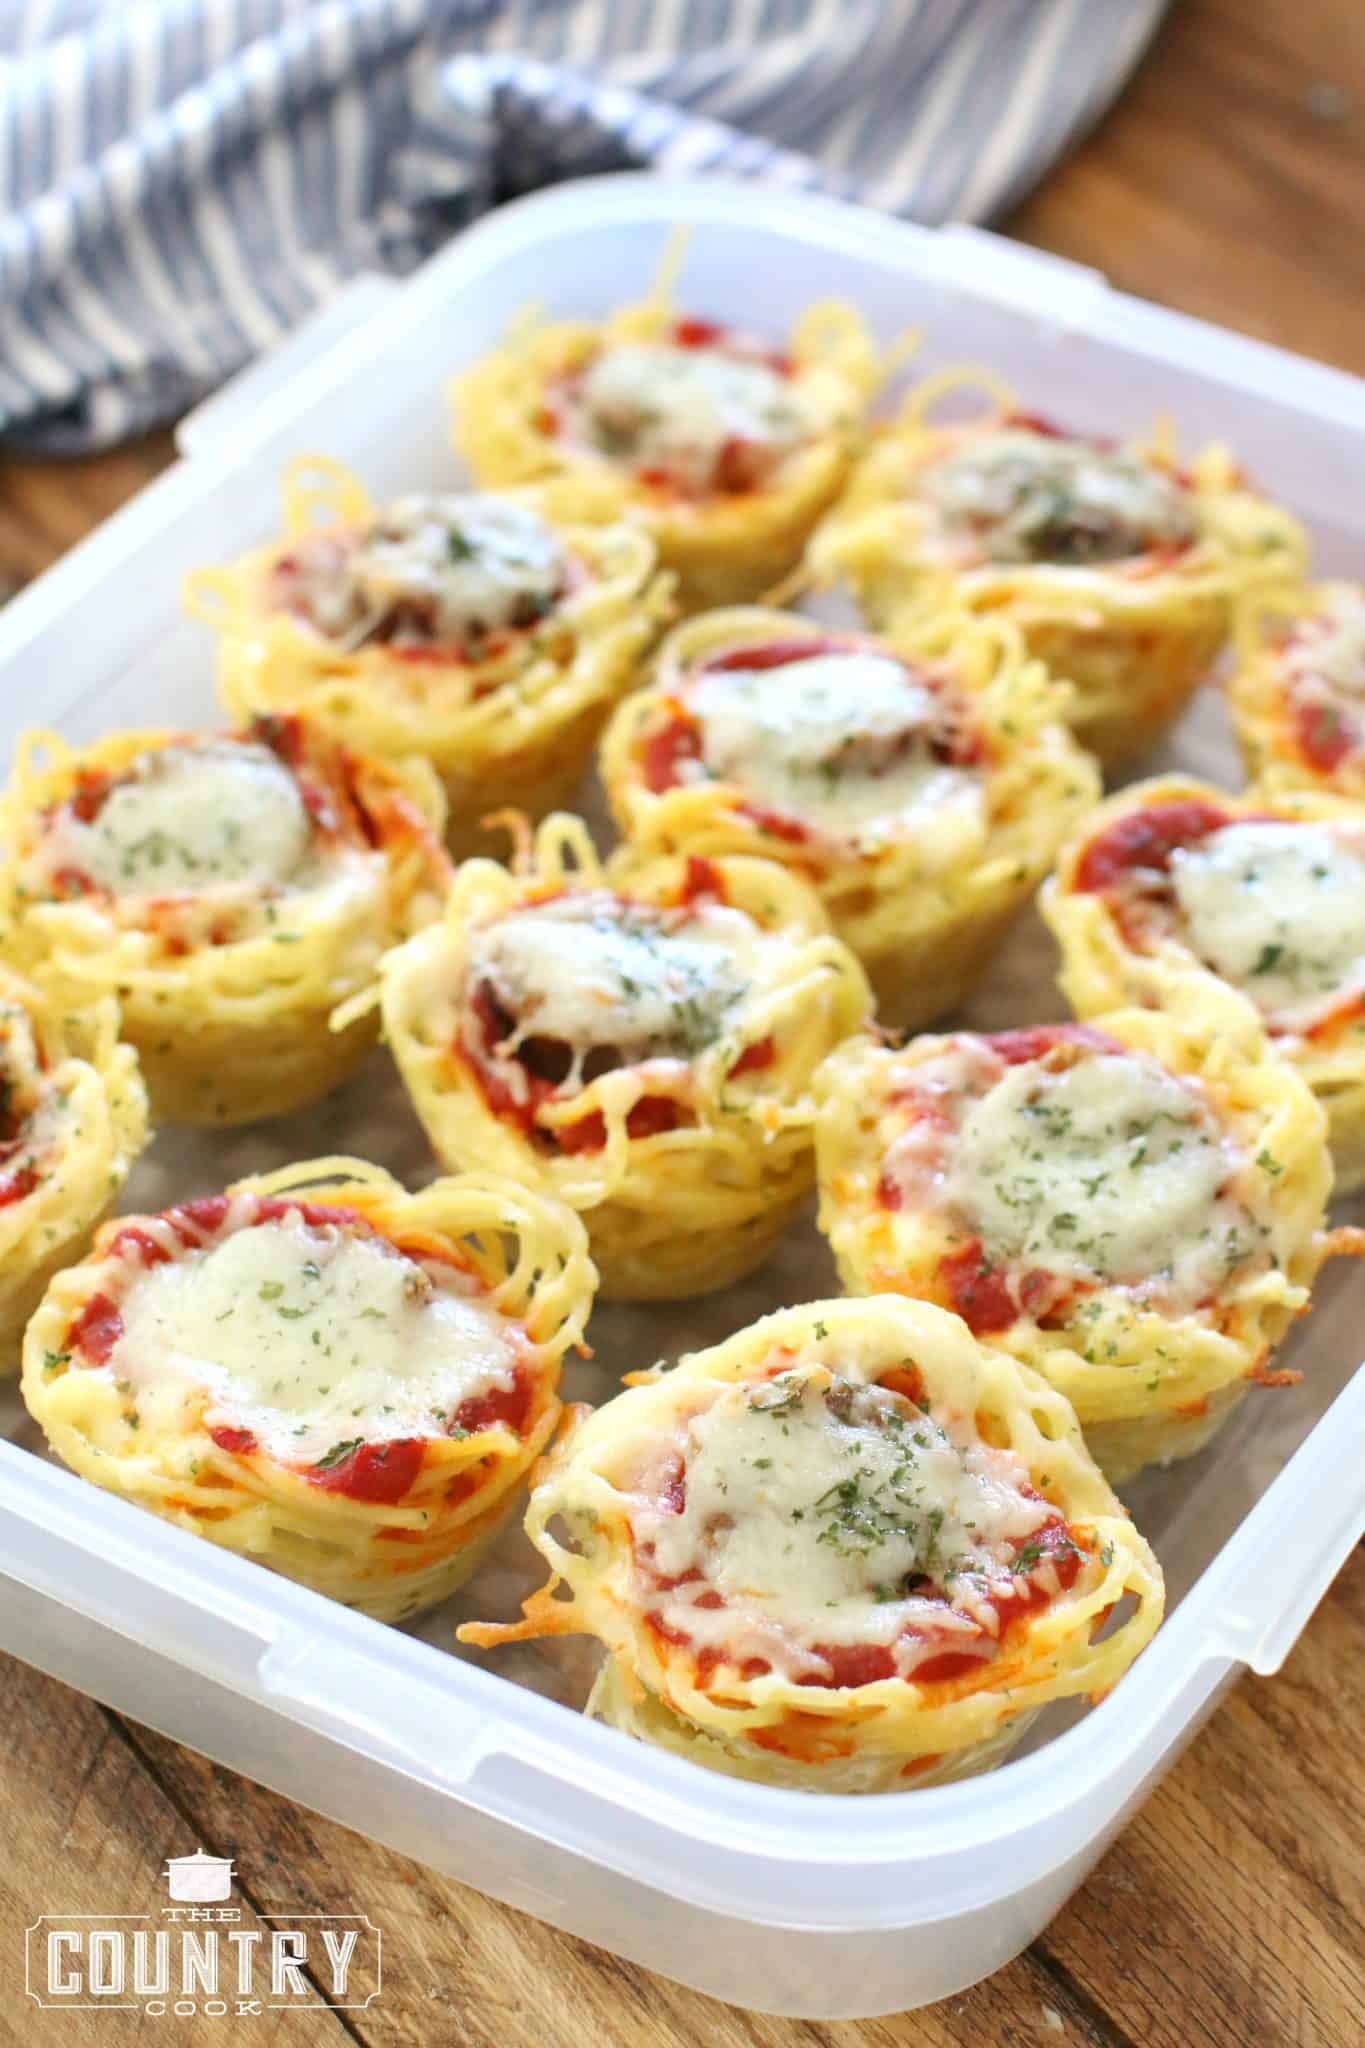 spaghetti sausage cups with melted cheese placed into a plastic container to store in the refrigerator